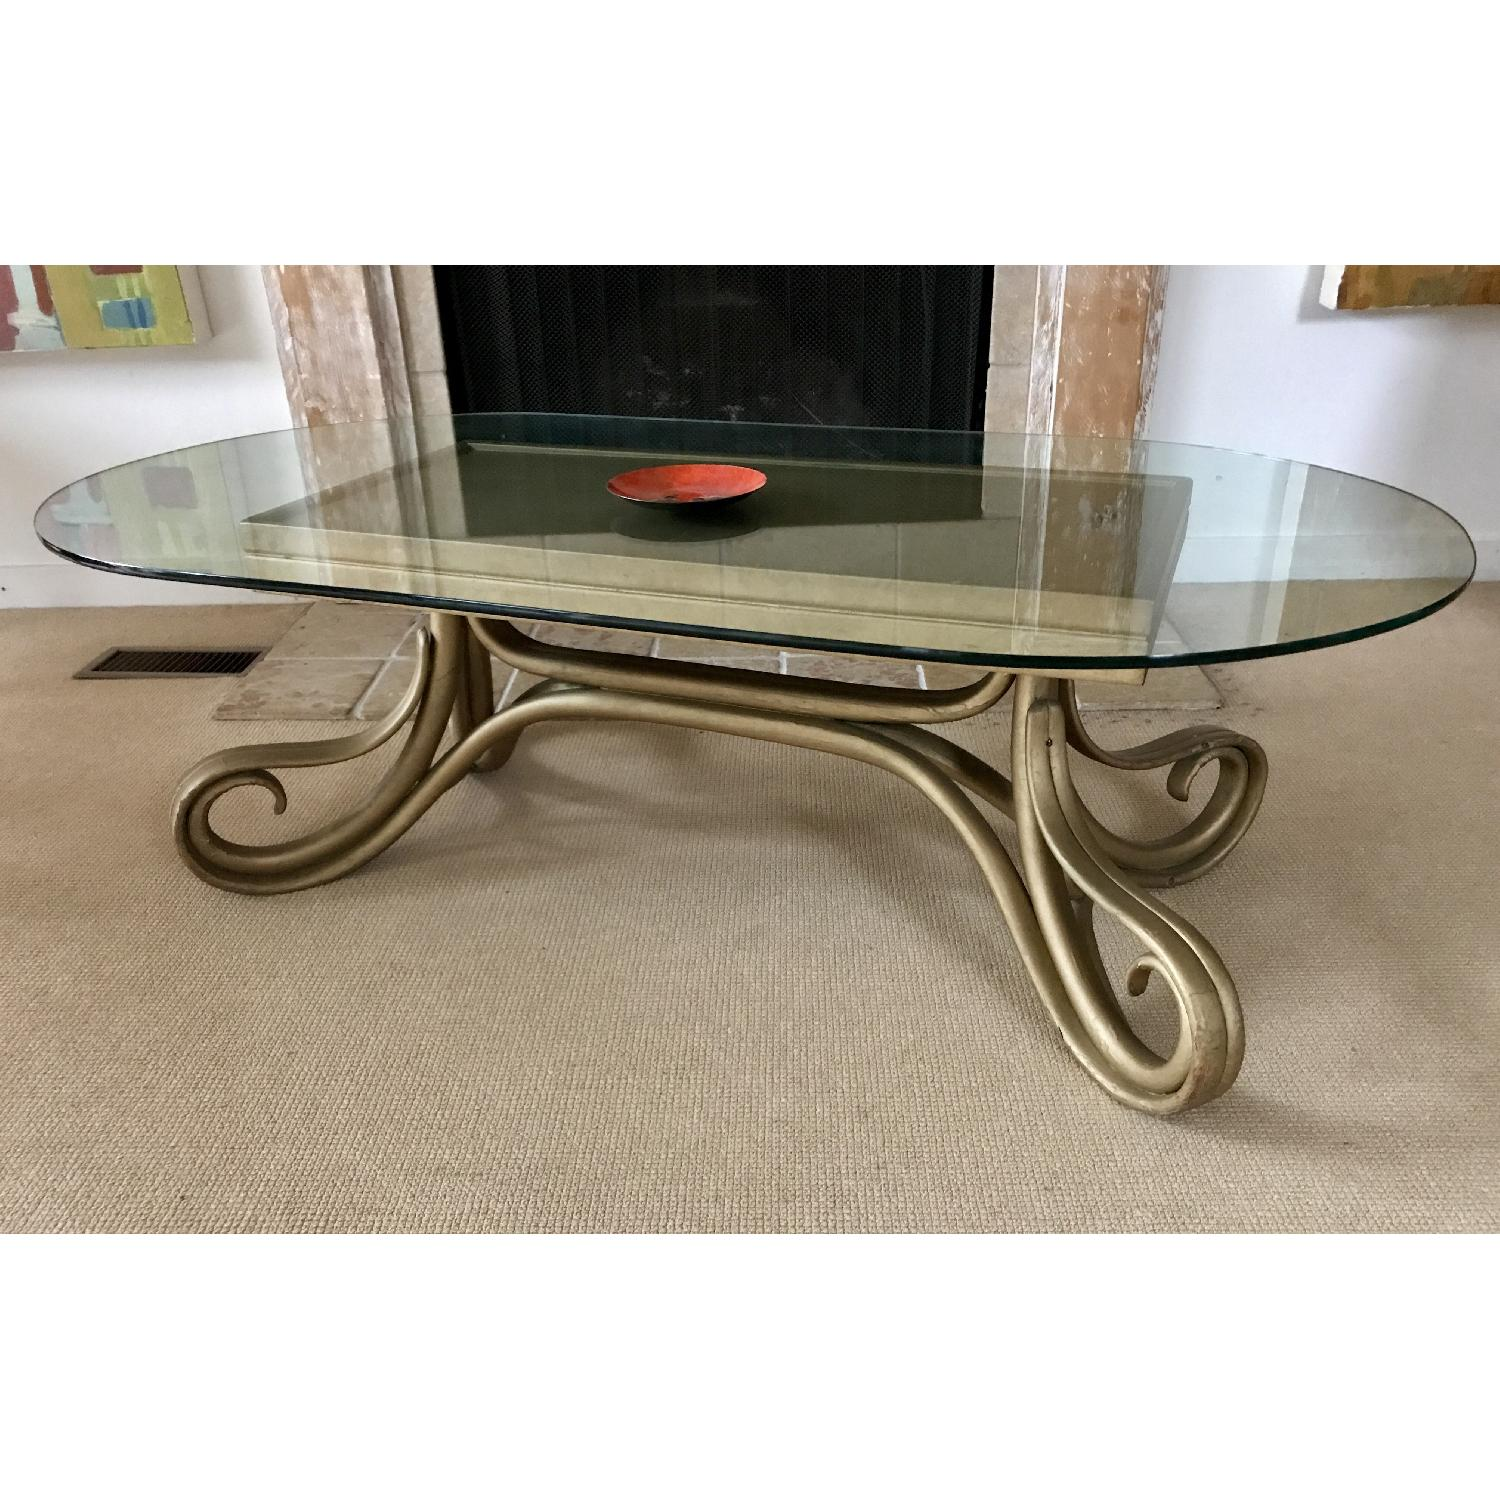 Vintage Thonet Bentwood Glass Top Coffee Table - image-1